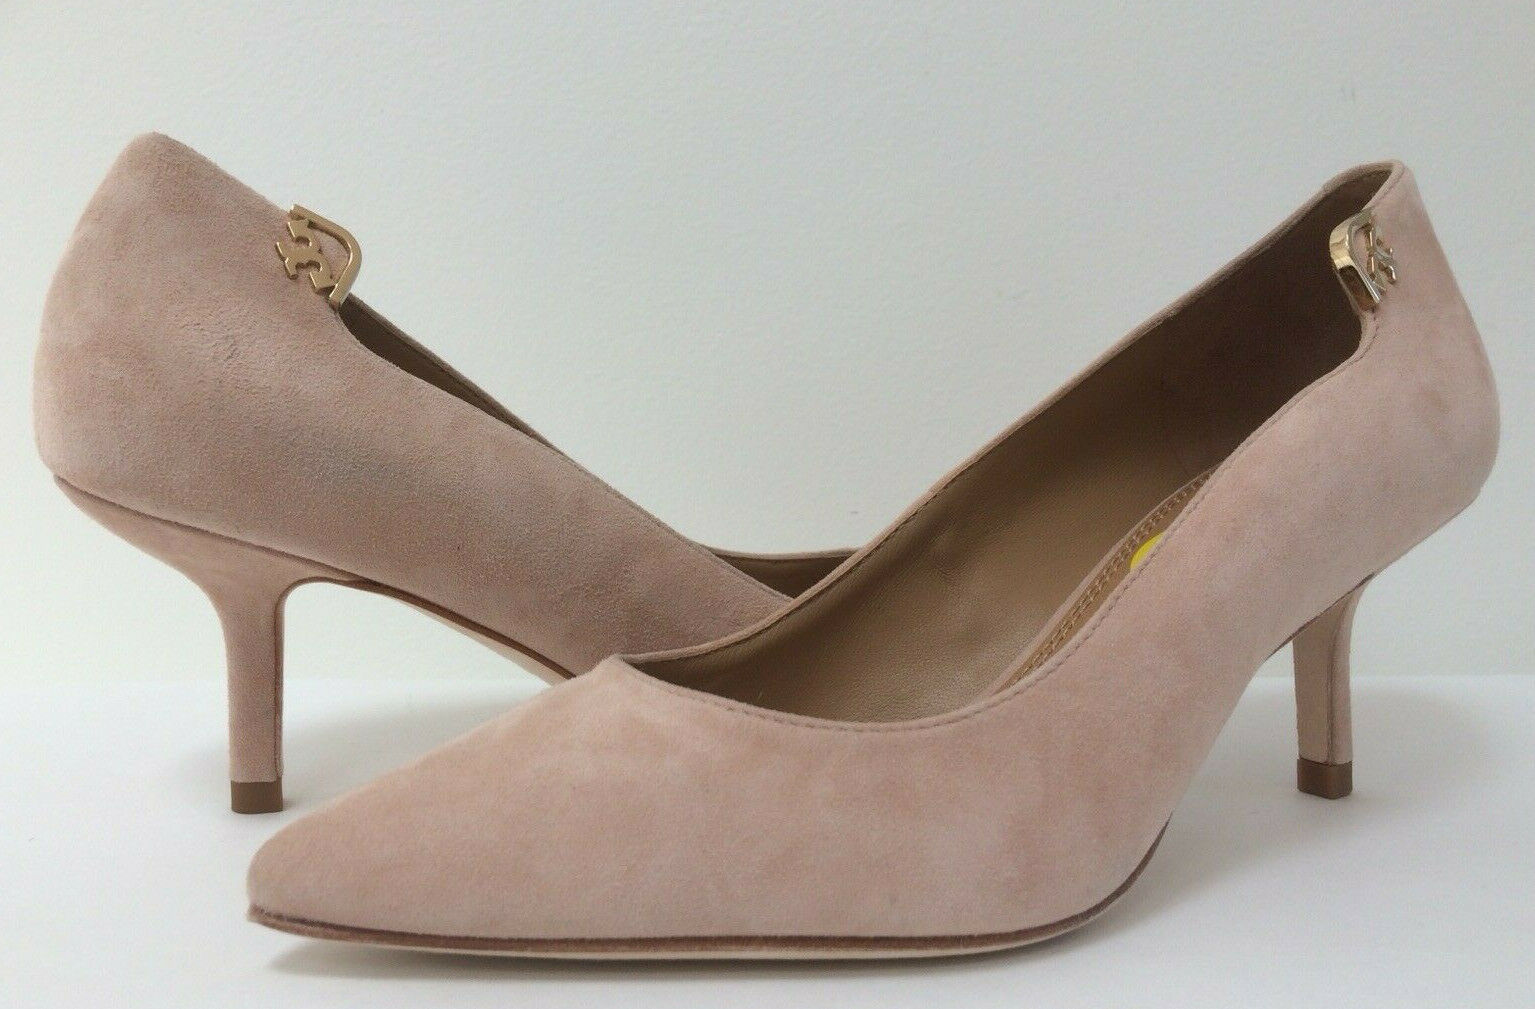 New Tory Burch 5M ELIZABETH Pointed Toe 65mm Pump Royal Suede Perfect bluesh Pink